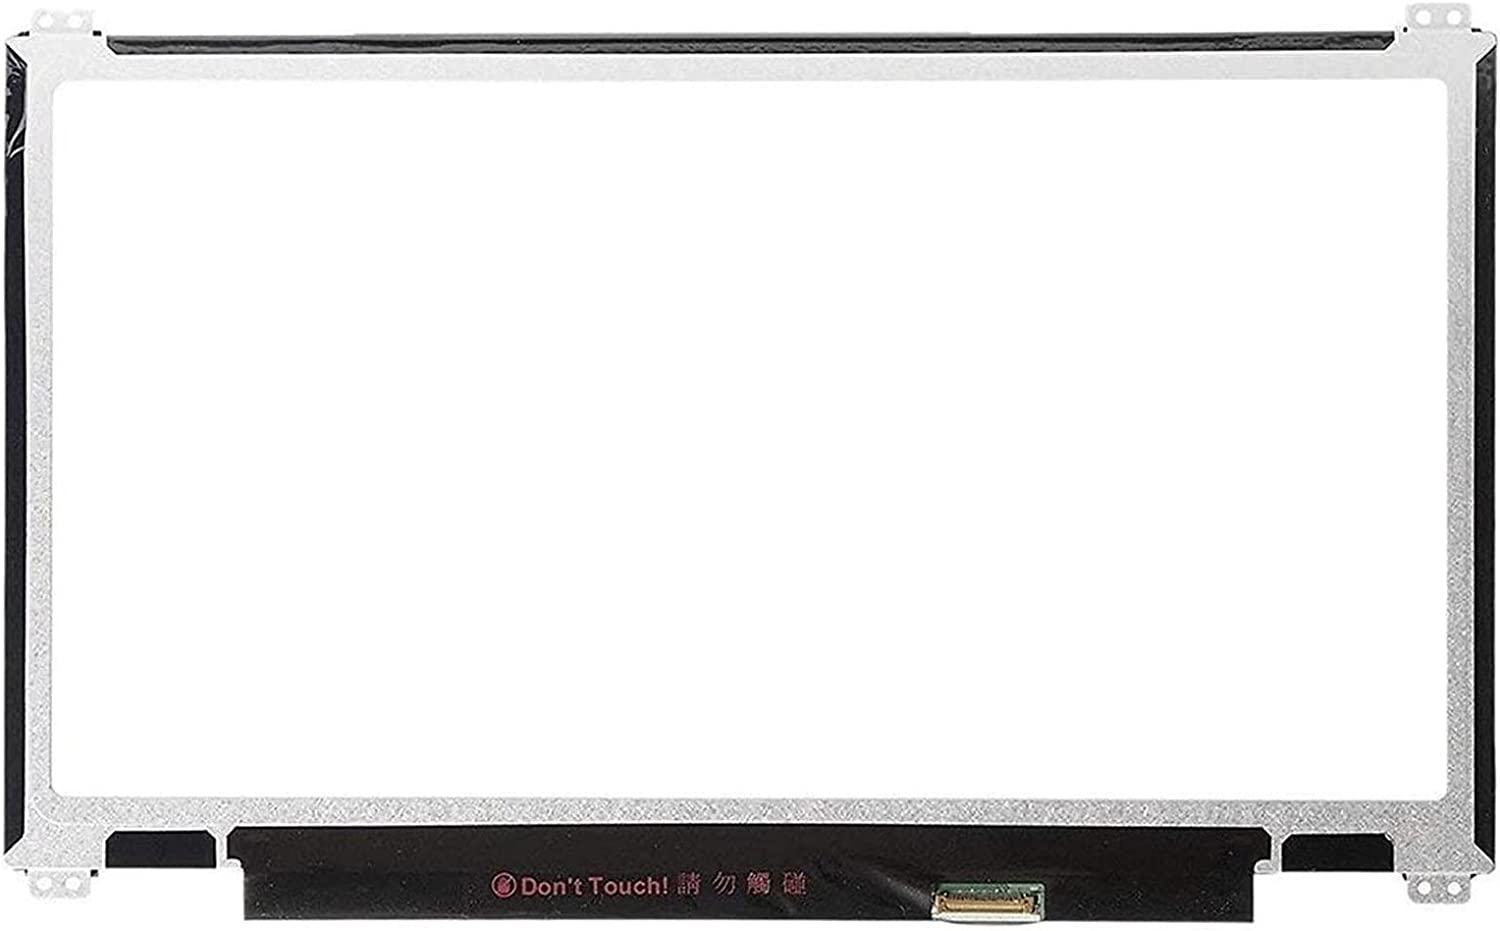 New Screen Replacement for Dell Latitude 3540 HD 1366x768 Glossy LCD LED Display Test Well